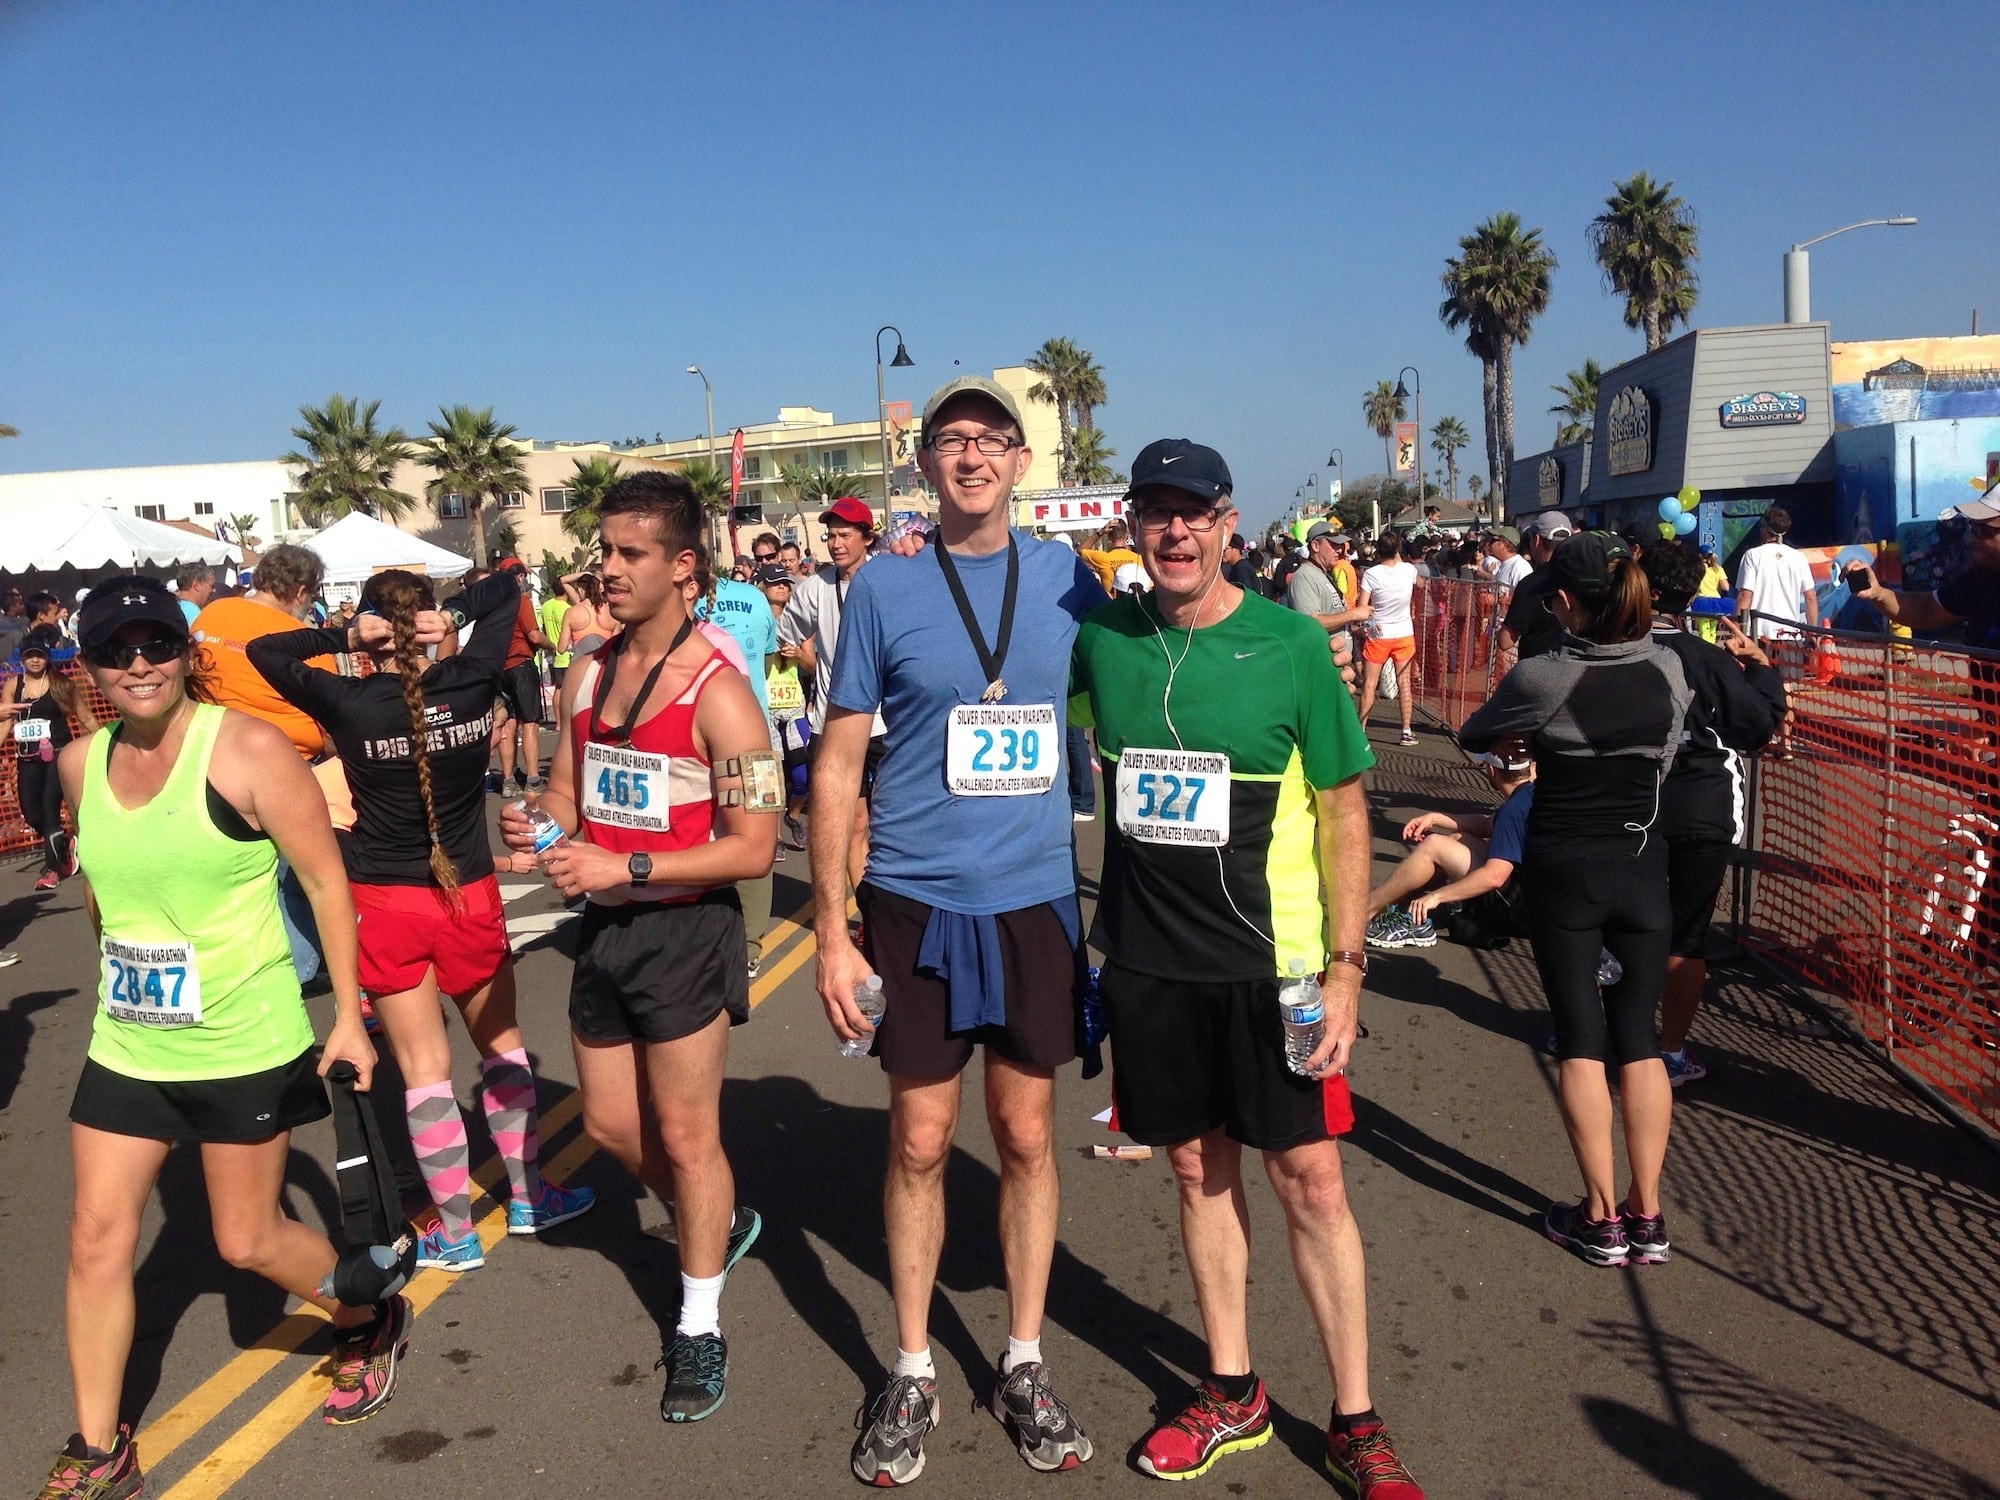 Running the Silver Strand Half Marathon (2013) with Wade Roush.